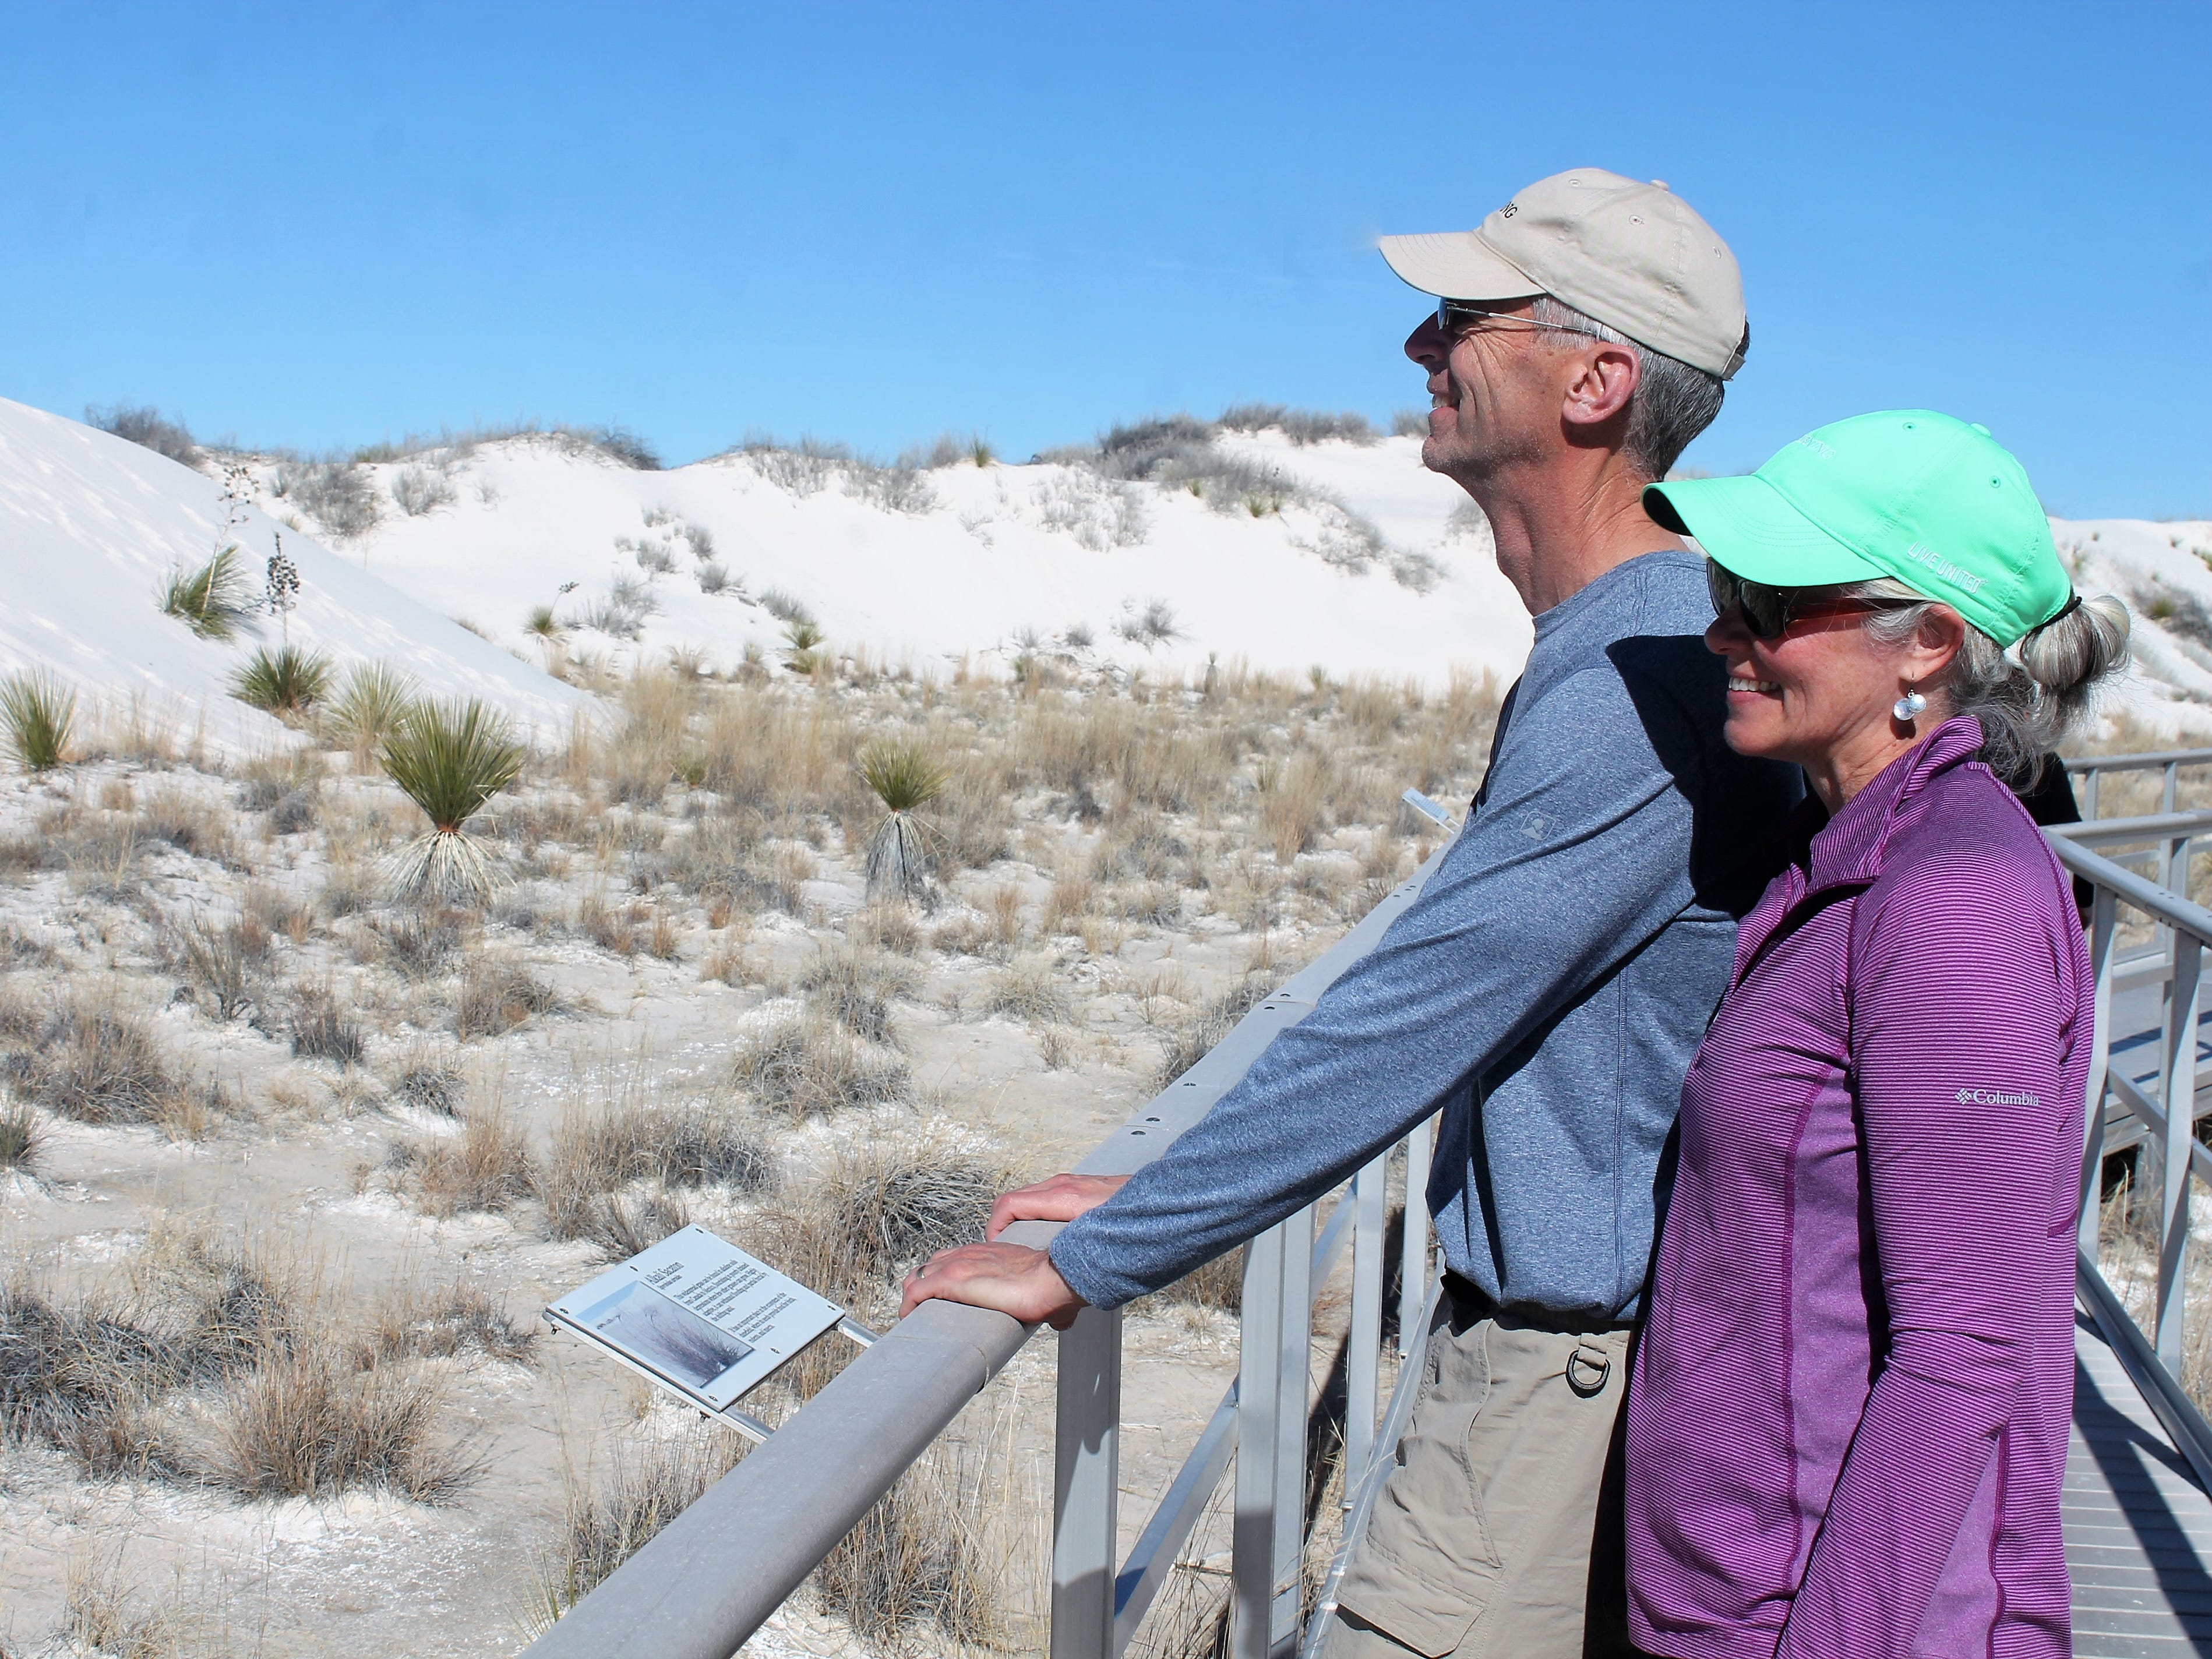 John and Becky Igel of Ft. Collins, Colo. on the Interdune Boardwalk at White Sands National Monument Monday.